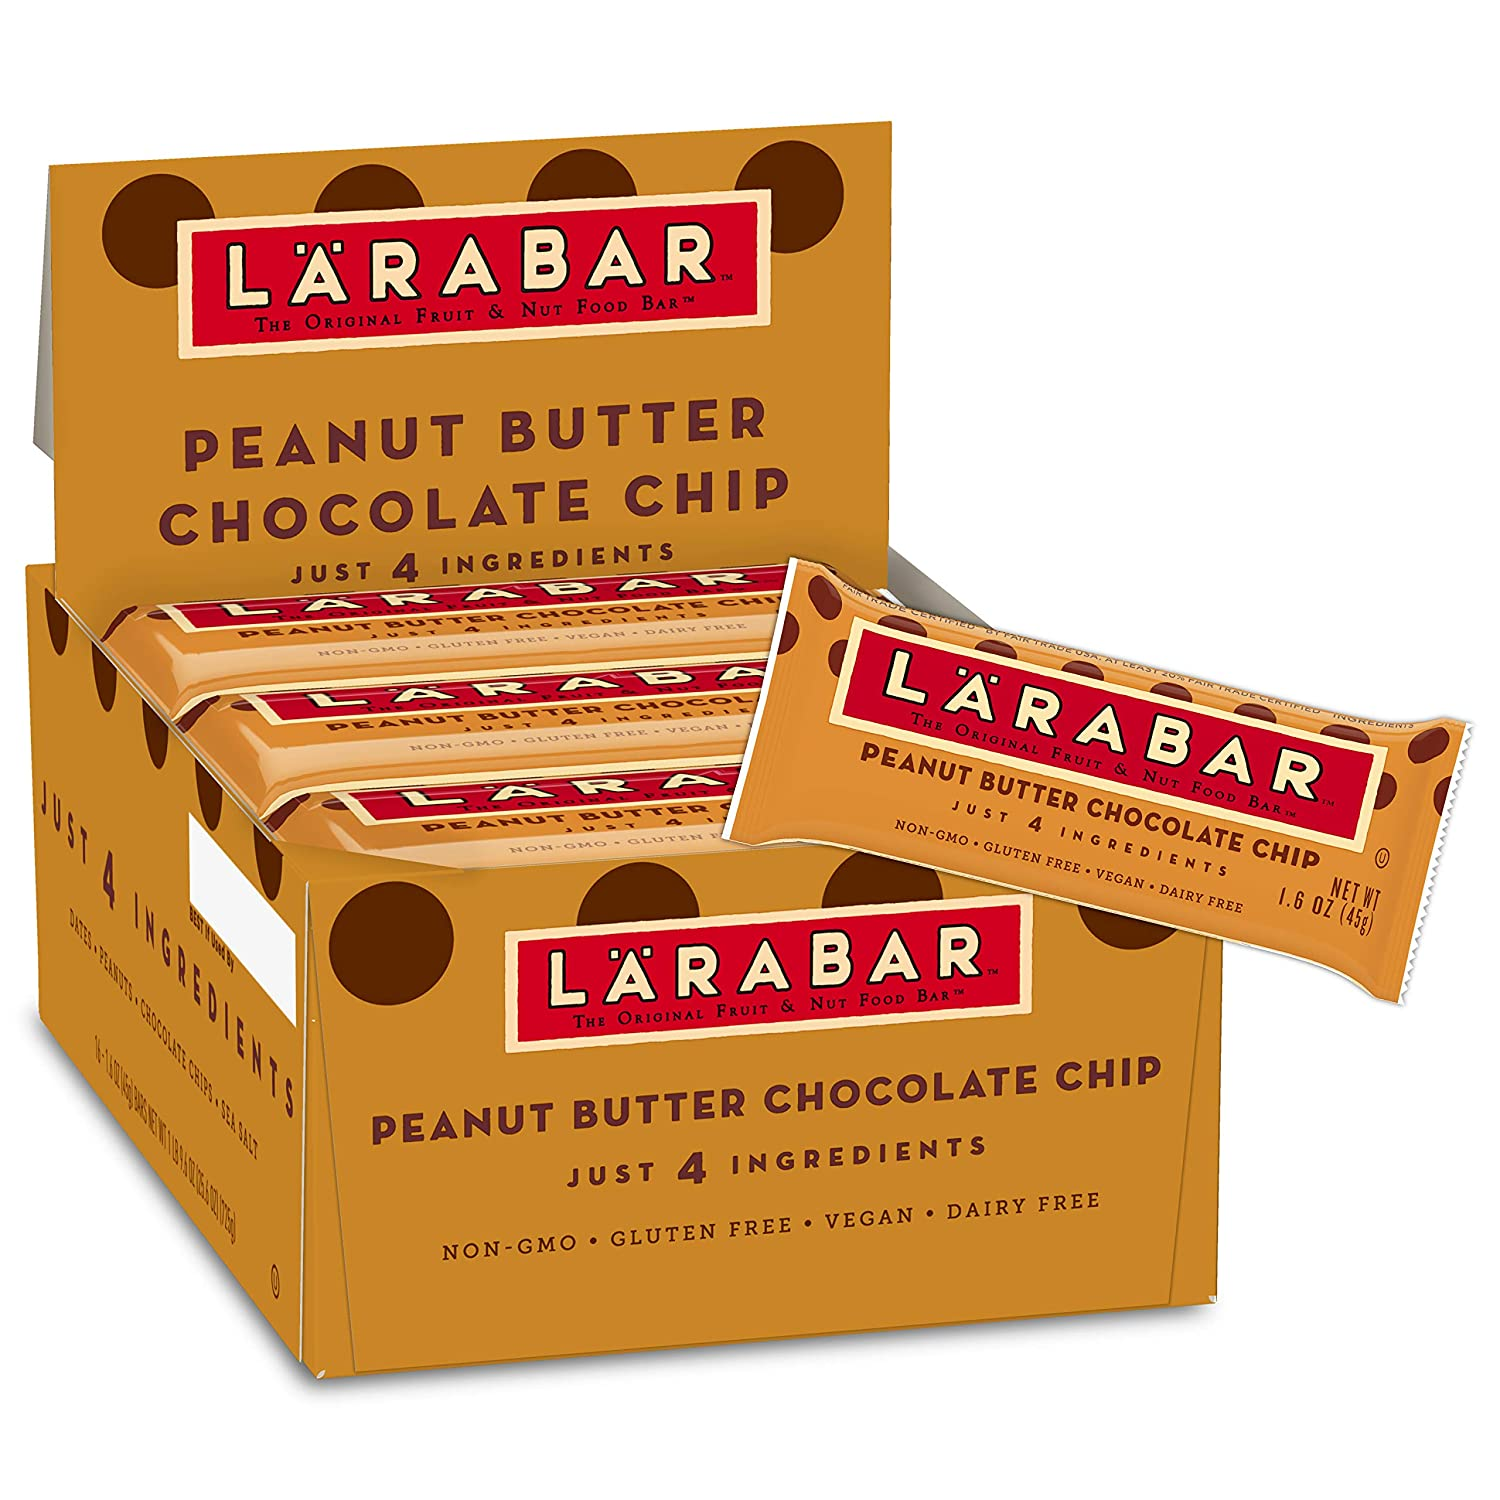 7. Larabar Peanut Butter Chocolate Chip